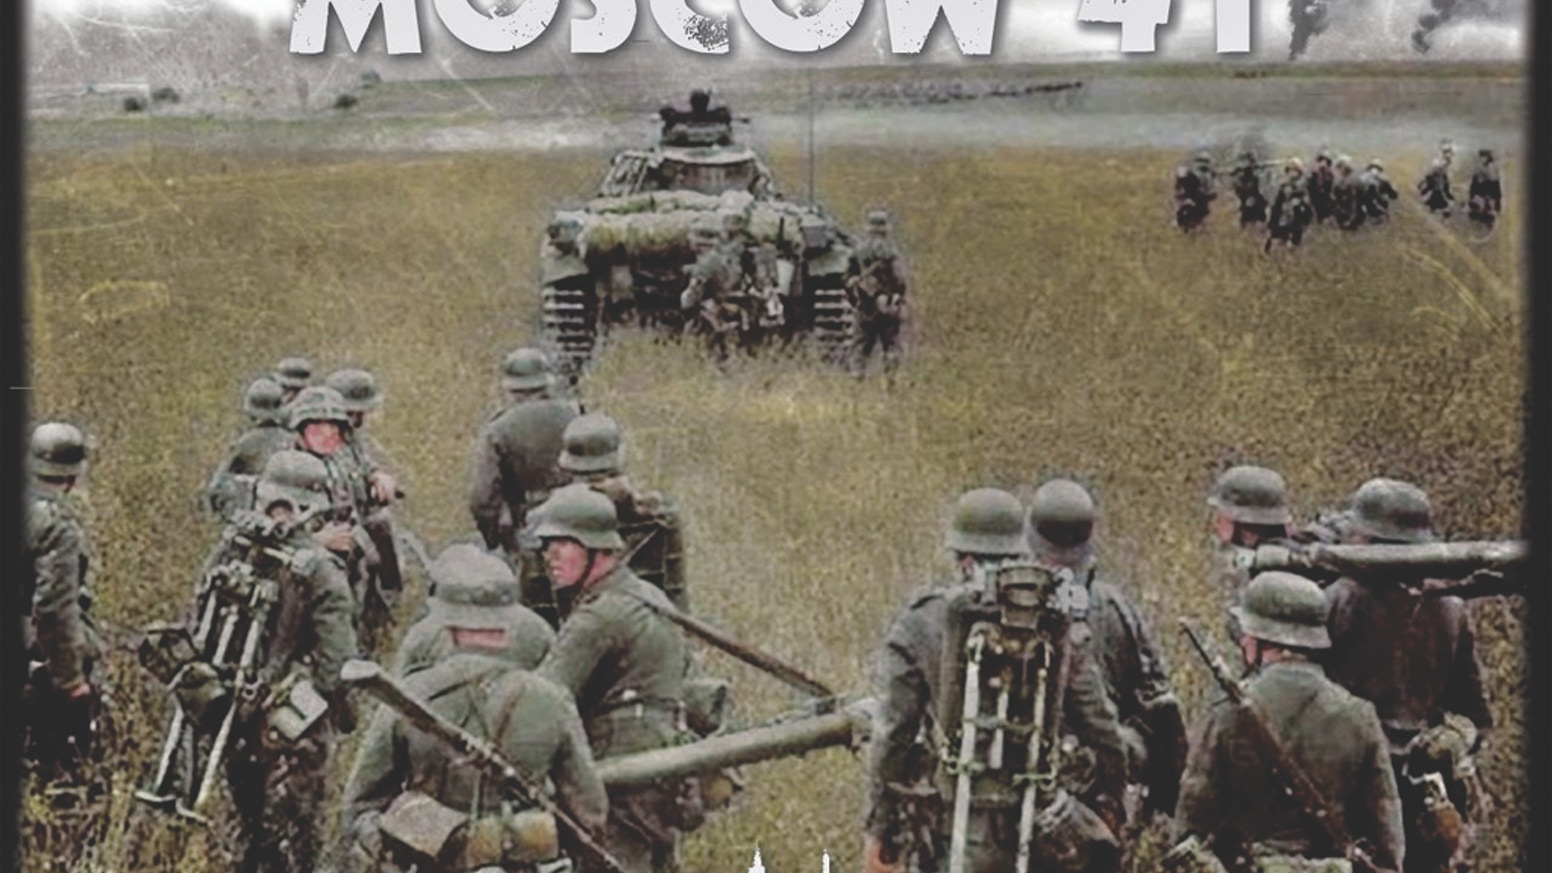 Moscow '41  Wargaming on the Eastern Front by VentoNuovo Games